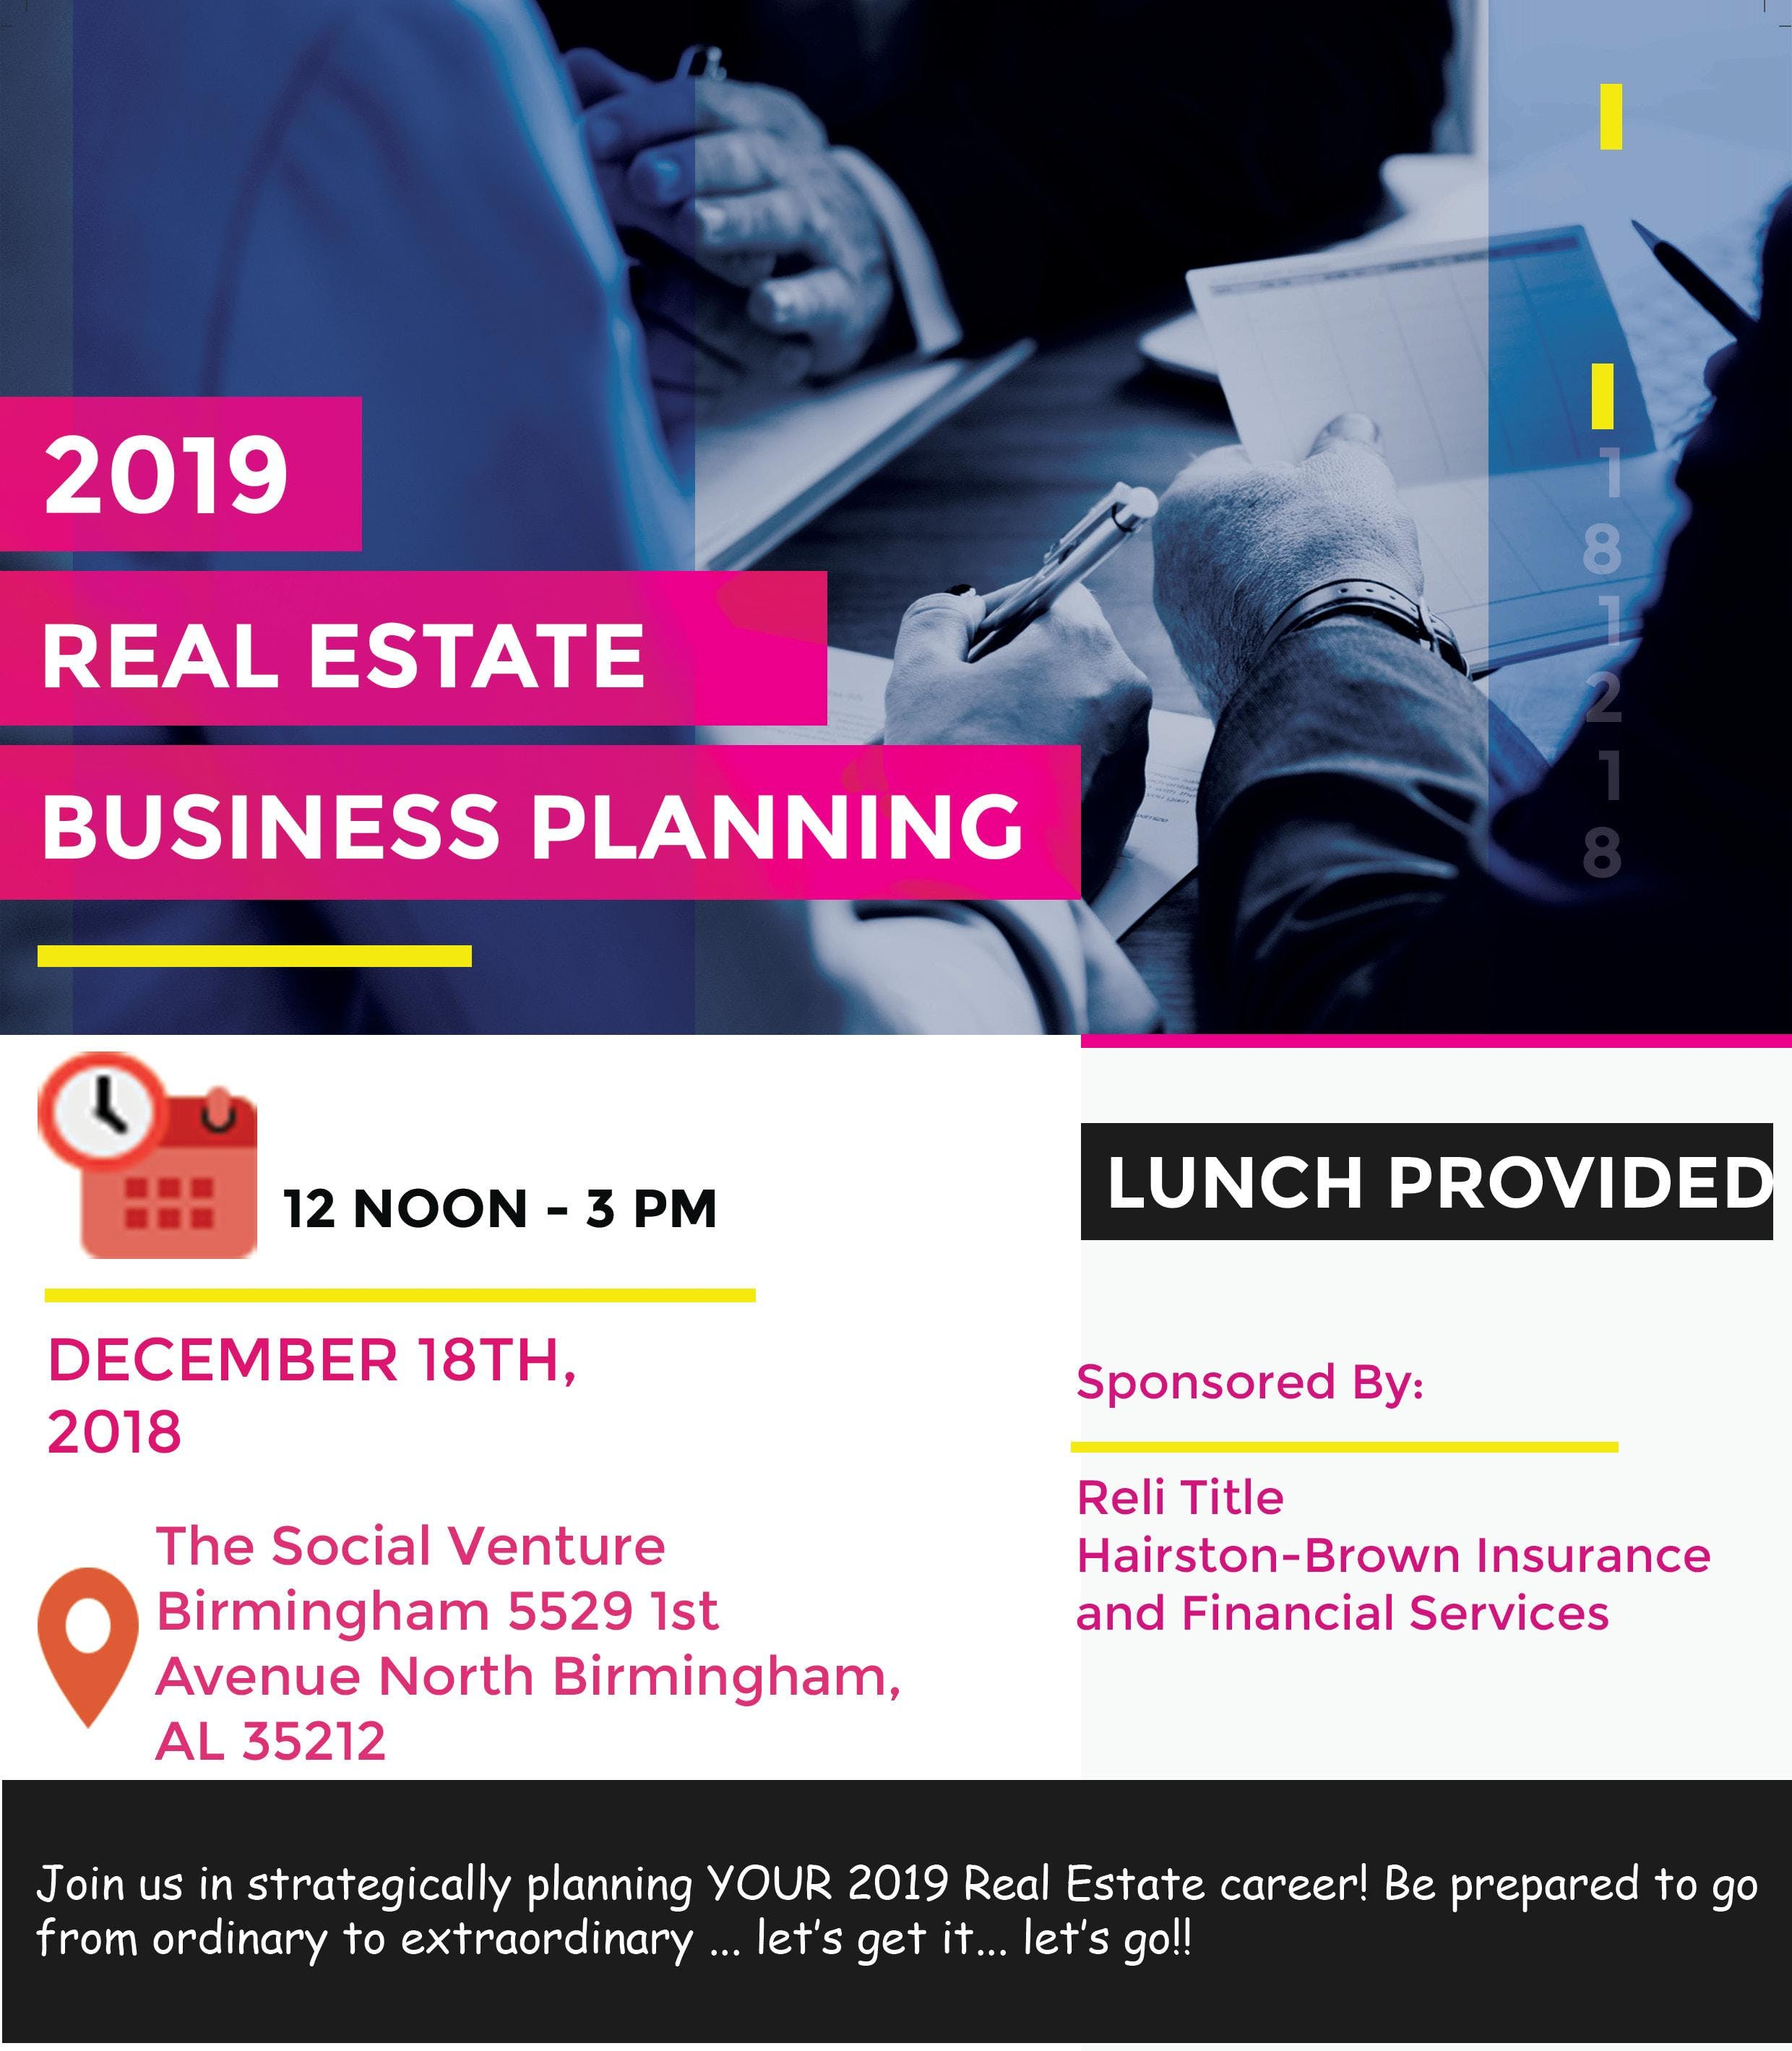 2019 Real Estate Business Planning